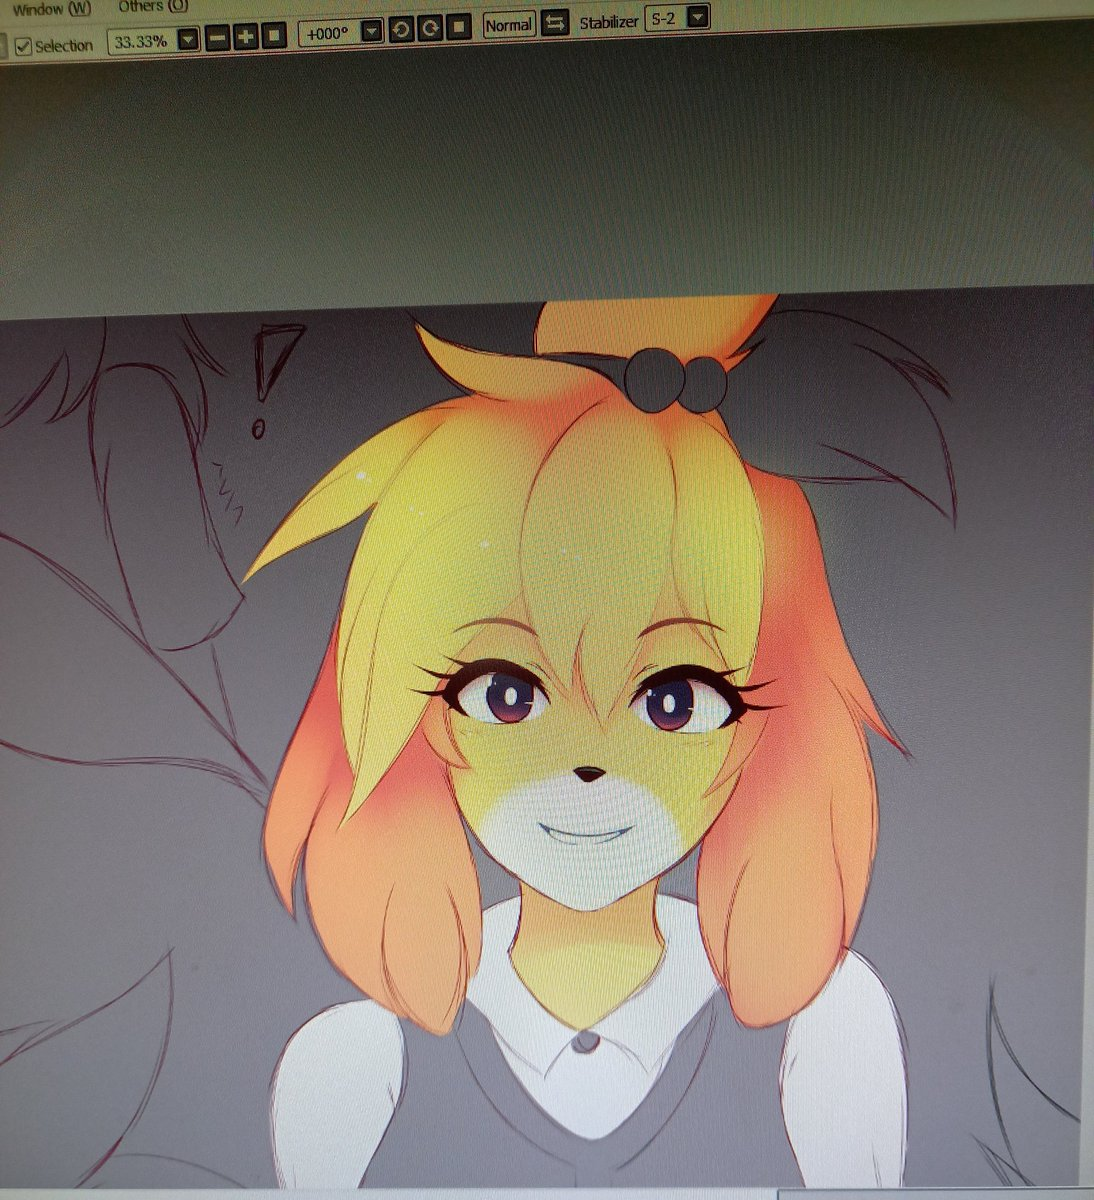 Small sneak peek of my next art 👀 #wip #animalcrossing #isabelle https://t.co/6PP2qlj1Gs